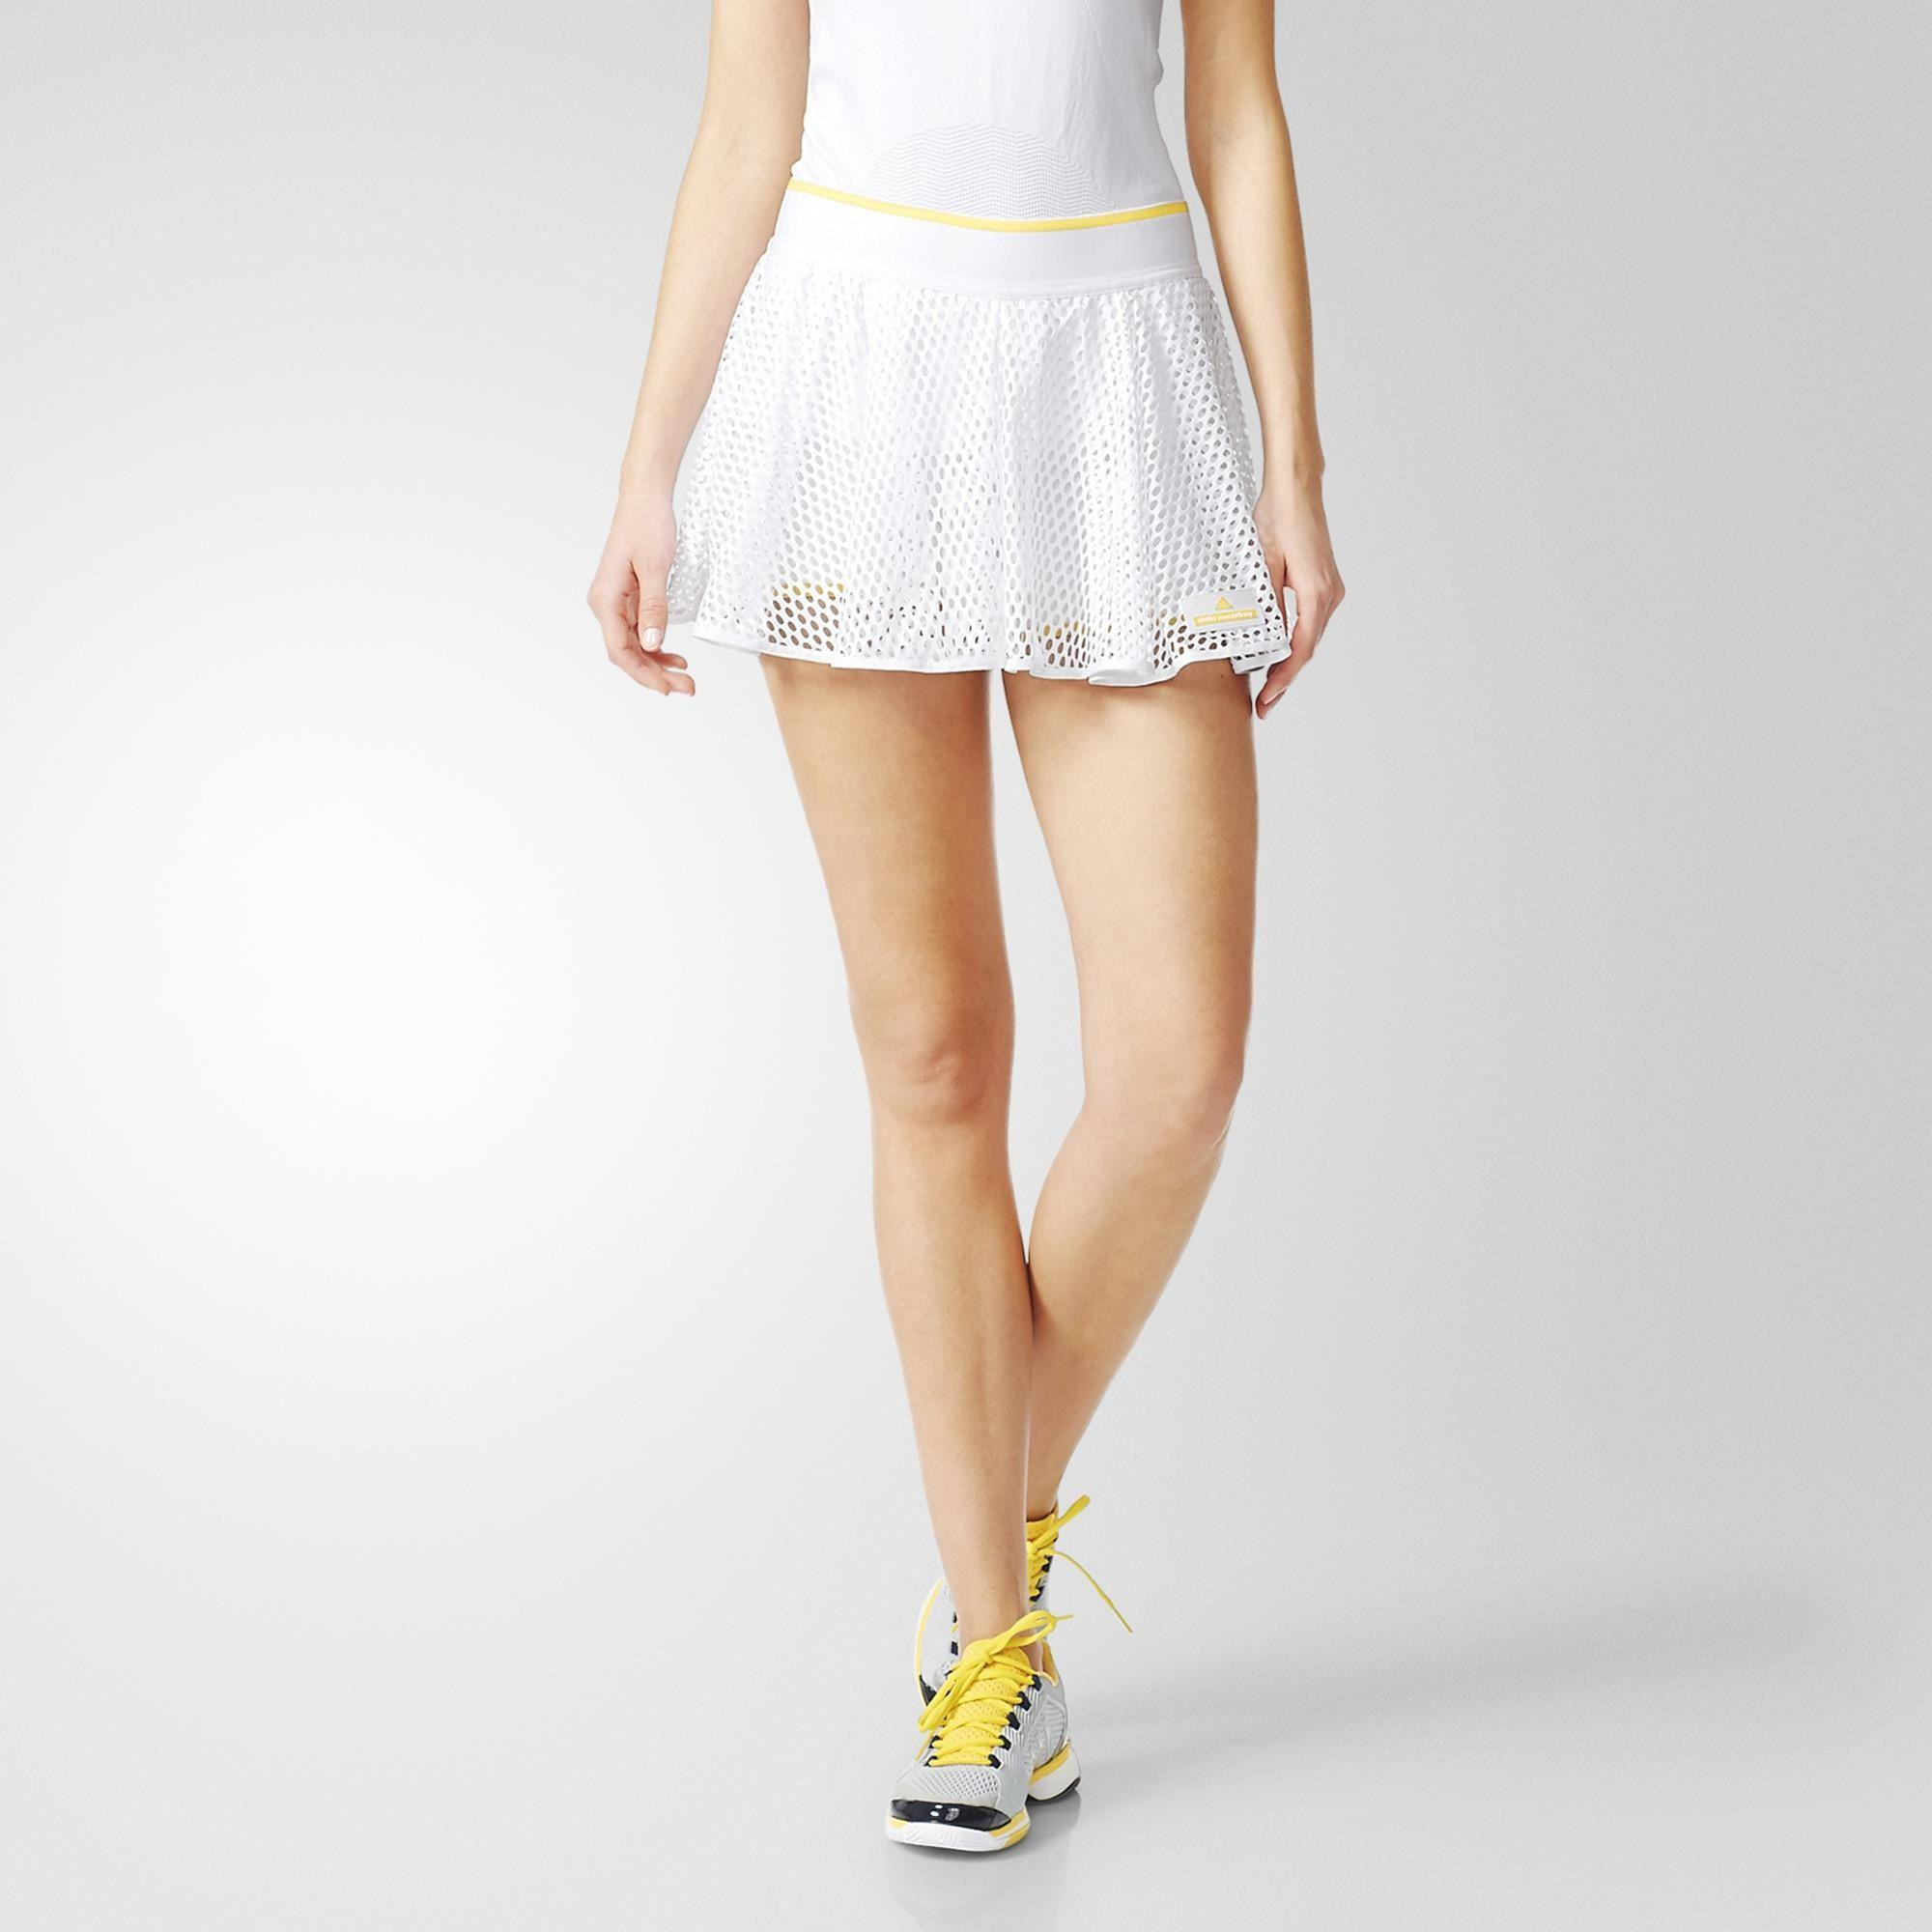 adidas stella mccartney skirt